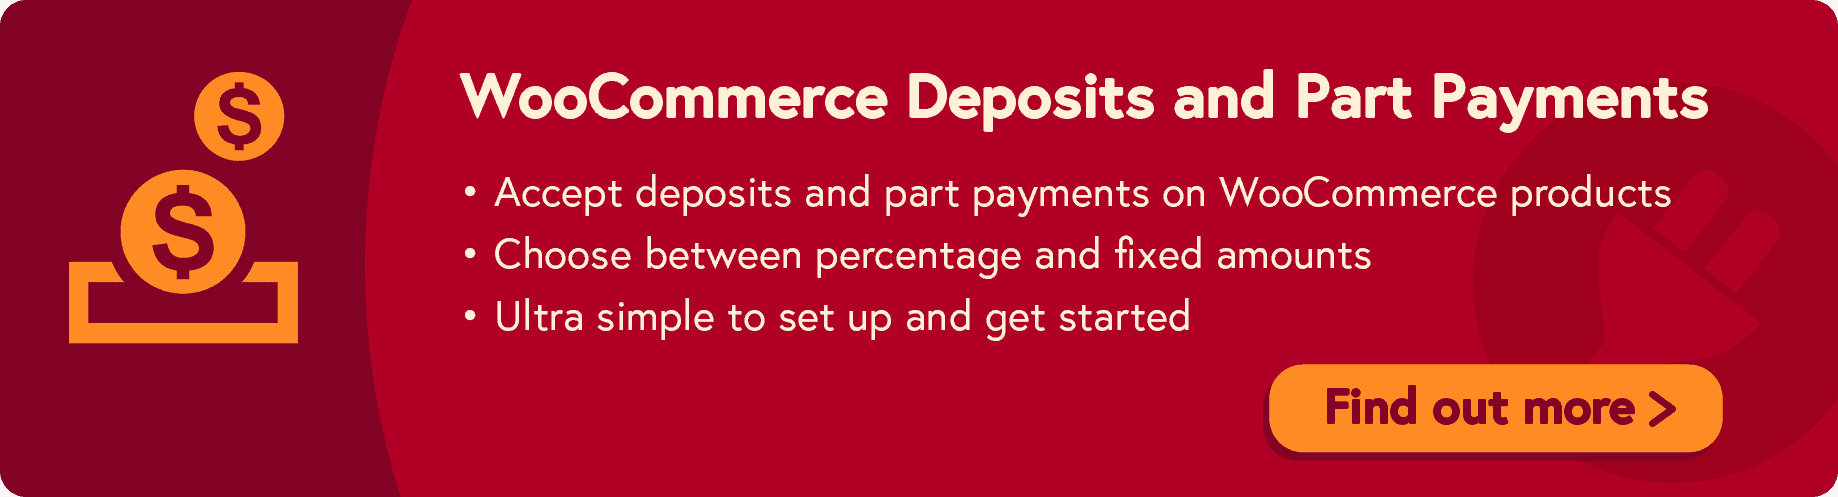 WooCommerce Deposits and Part Payments plugin call to action